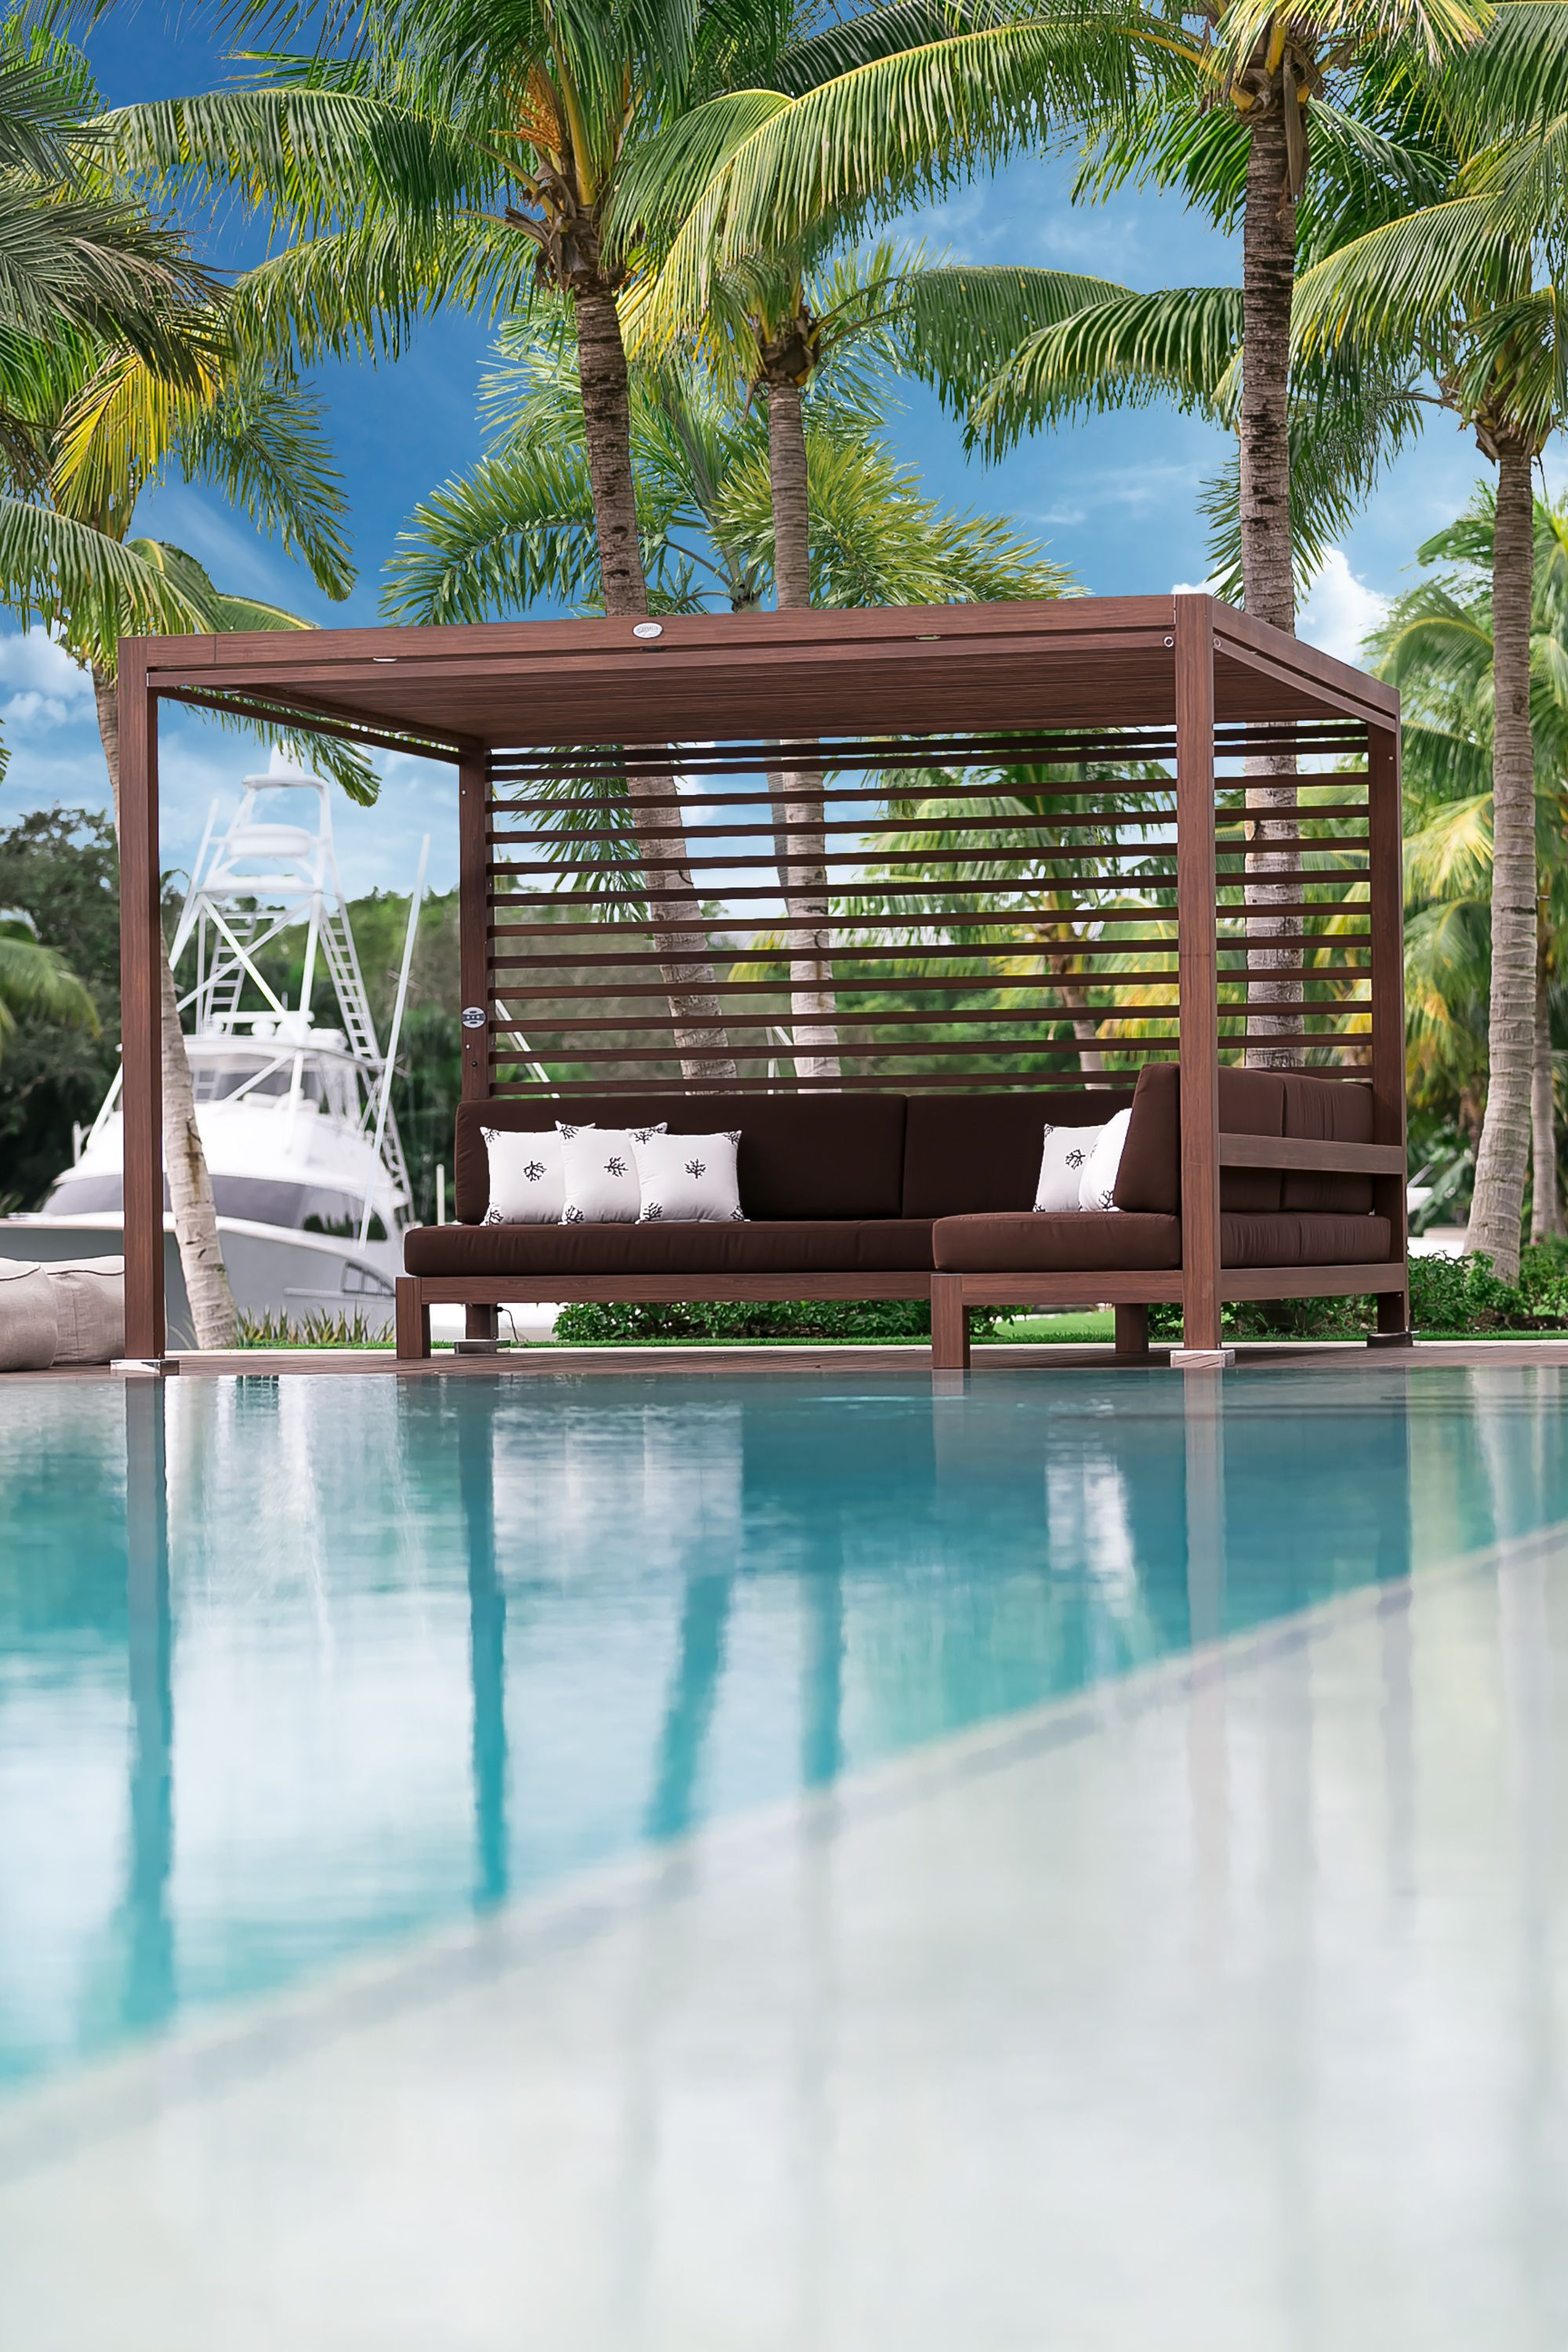 Transform any outdoor space into a sleek, sophisticated gathering place  with Equinox Cabana structures.